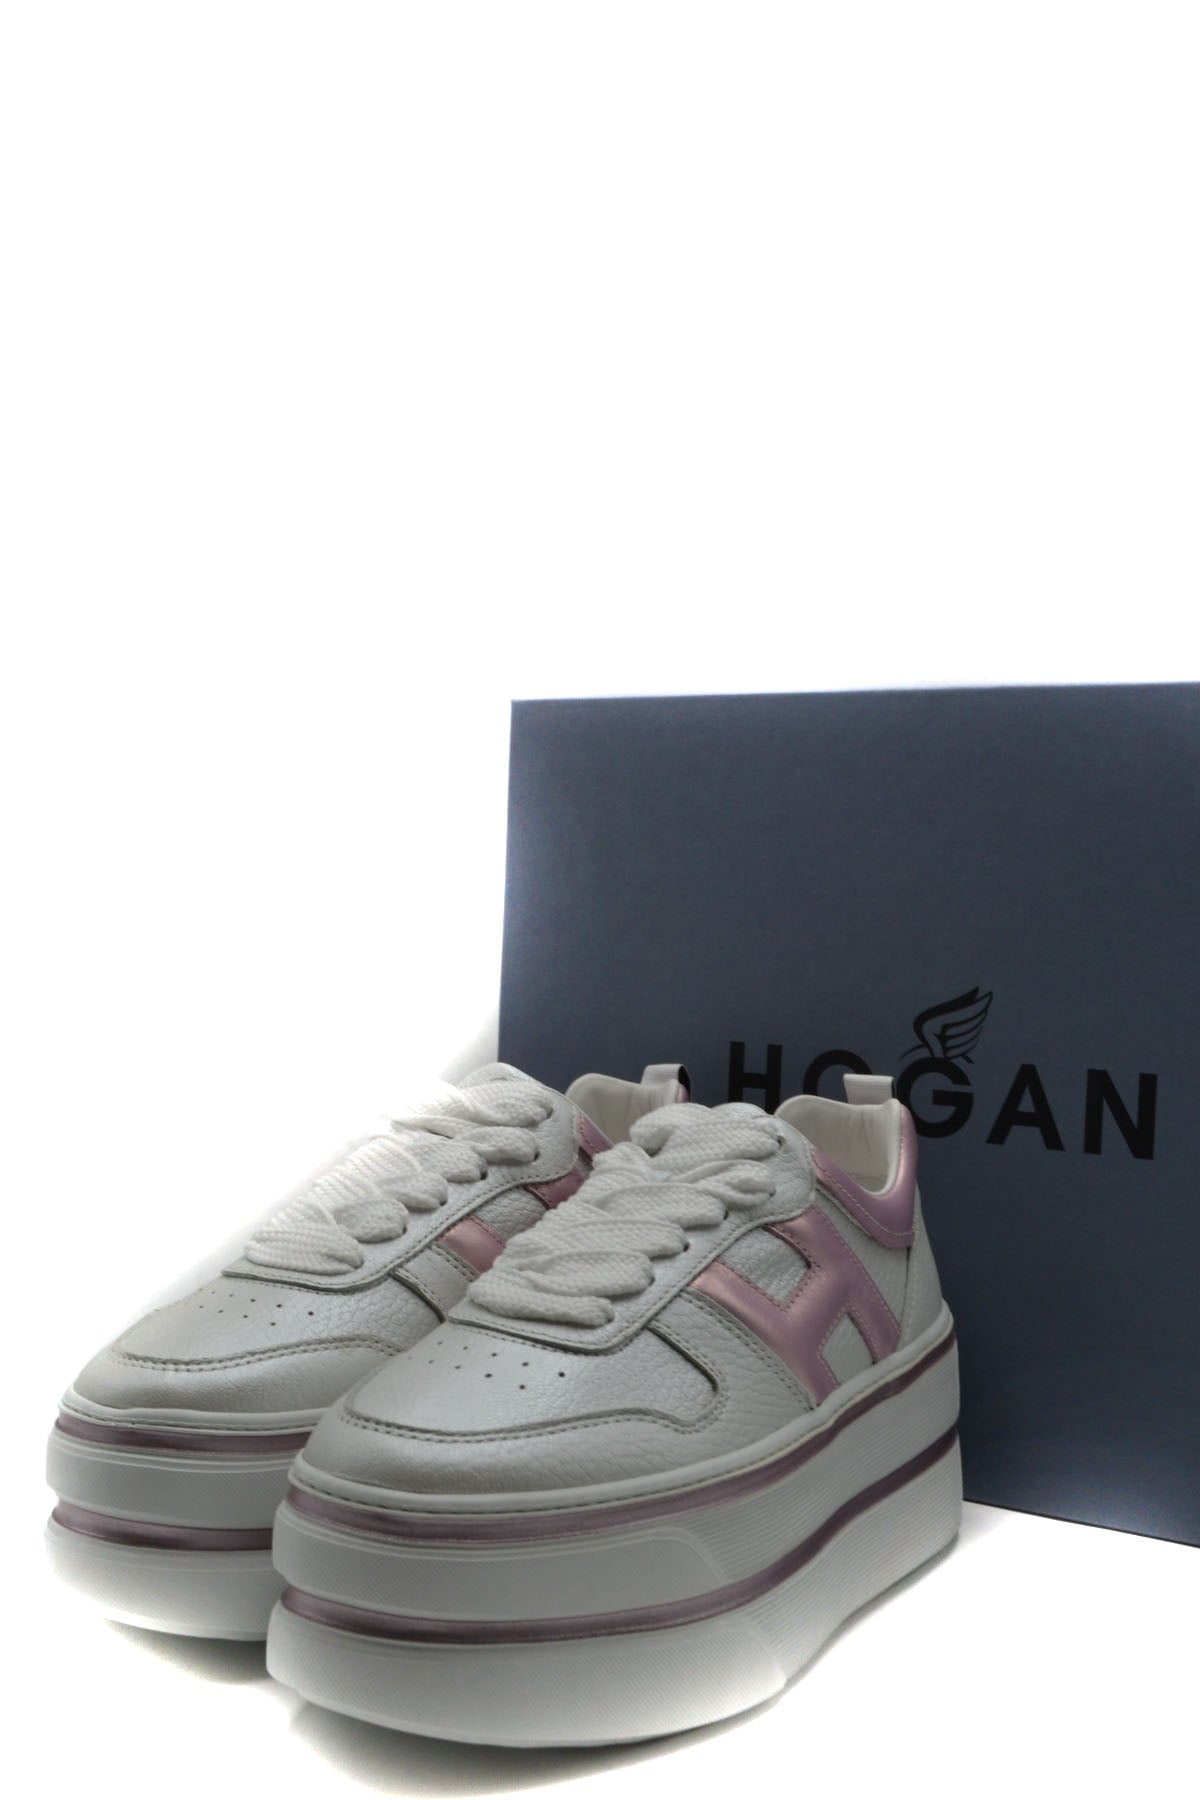 Shoes Hogan-Sports & Entertainment - Sneakers-Product Details-Keyomi-Sook